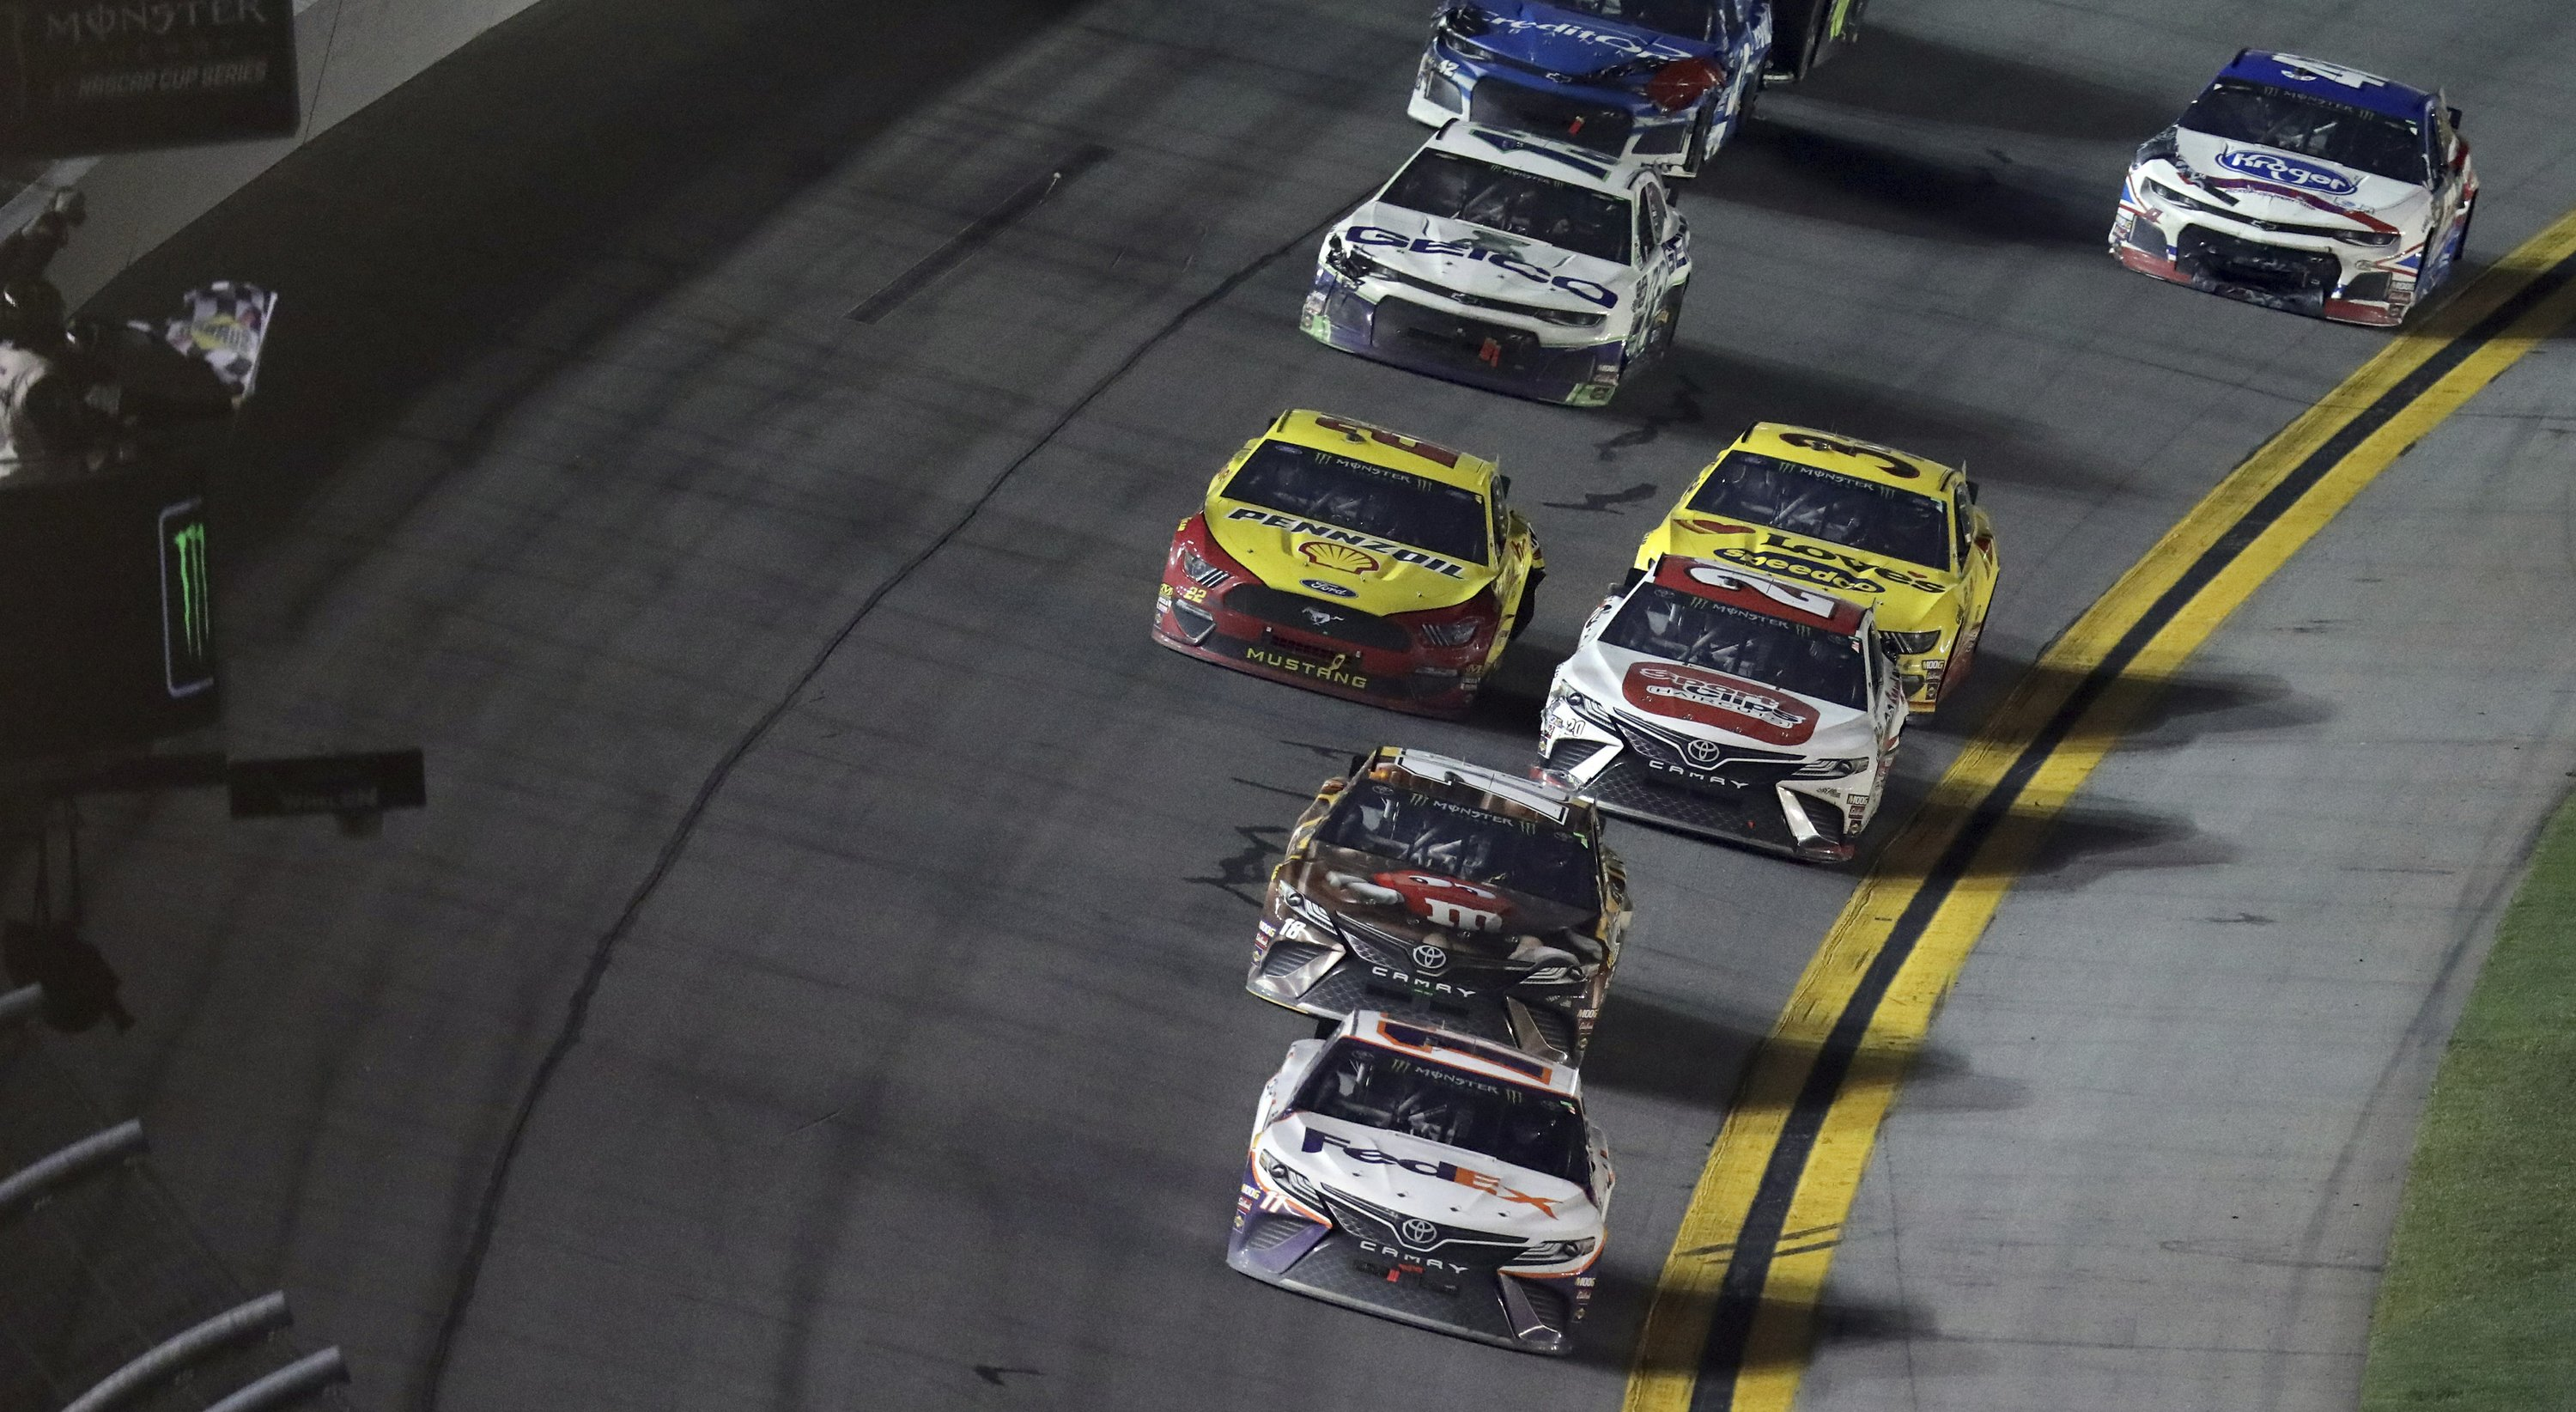 McDowell defends Daytona 500 decision not to push Logano - The Associated Press